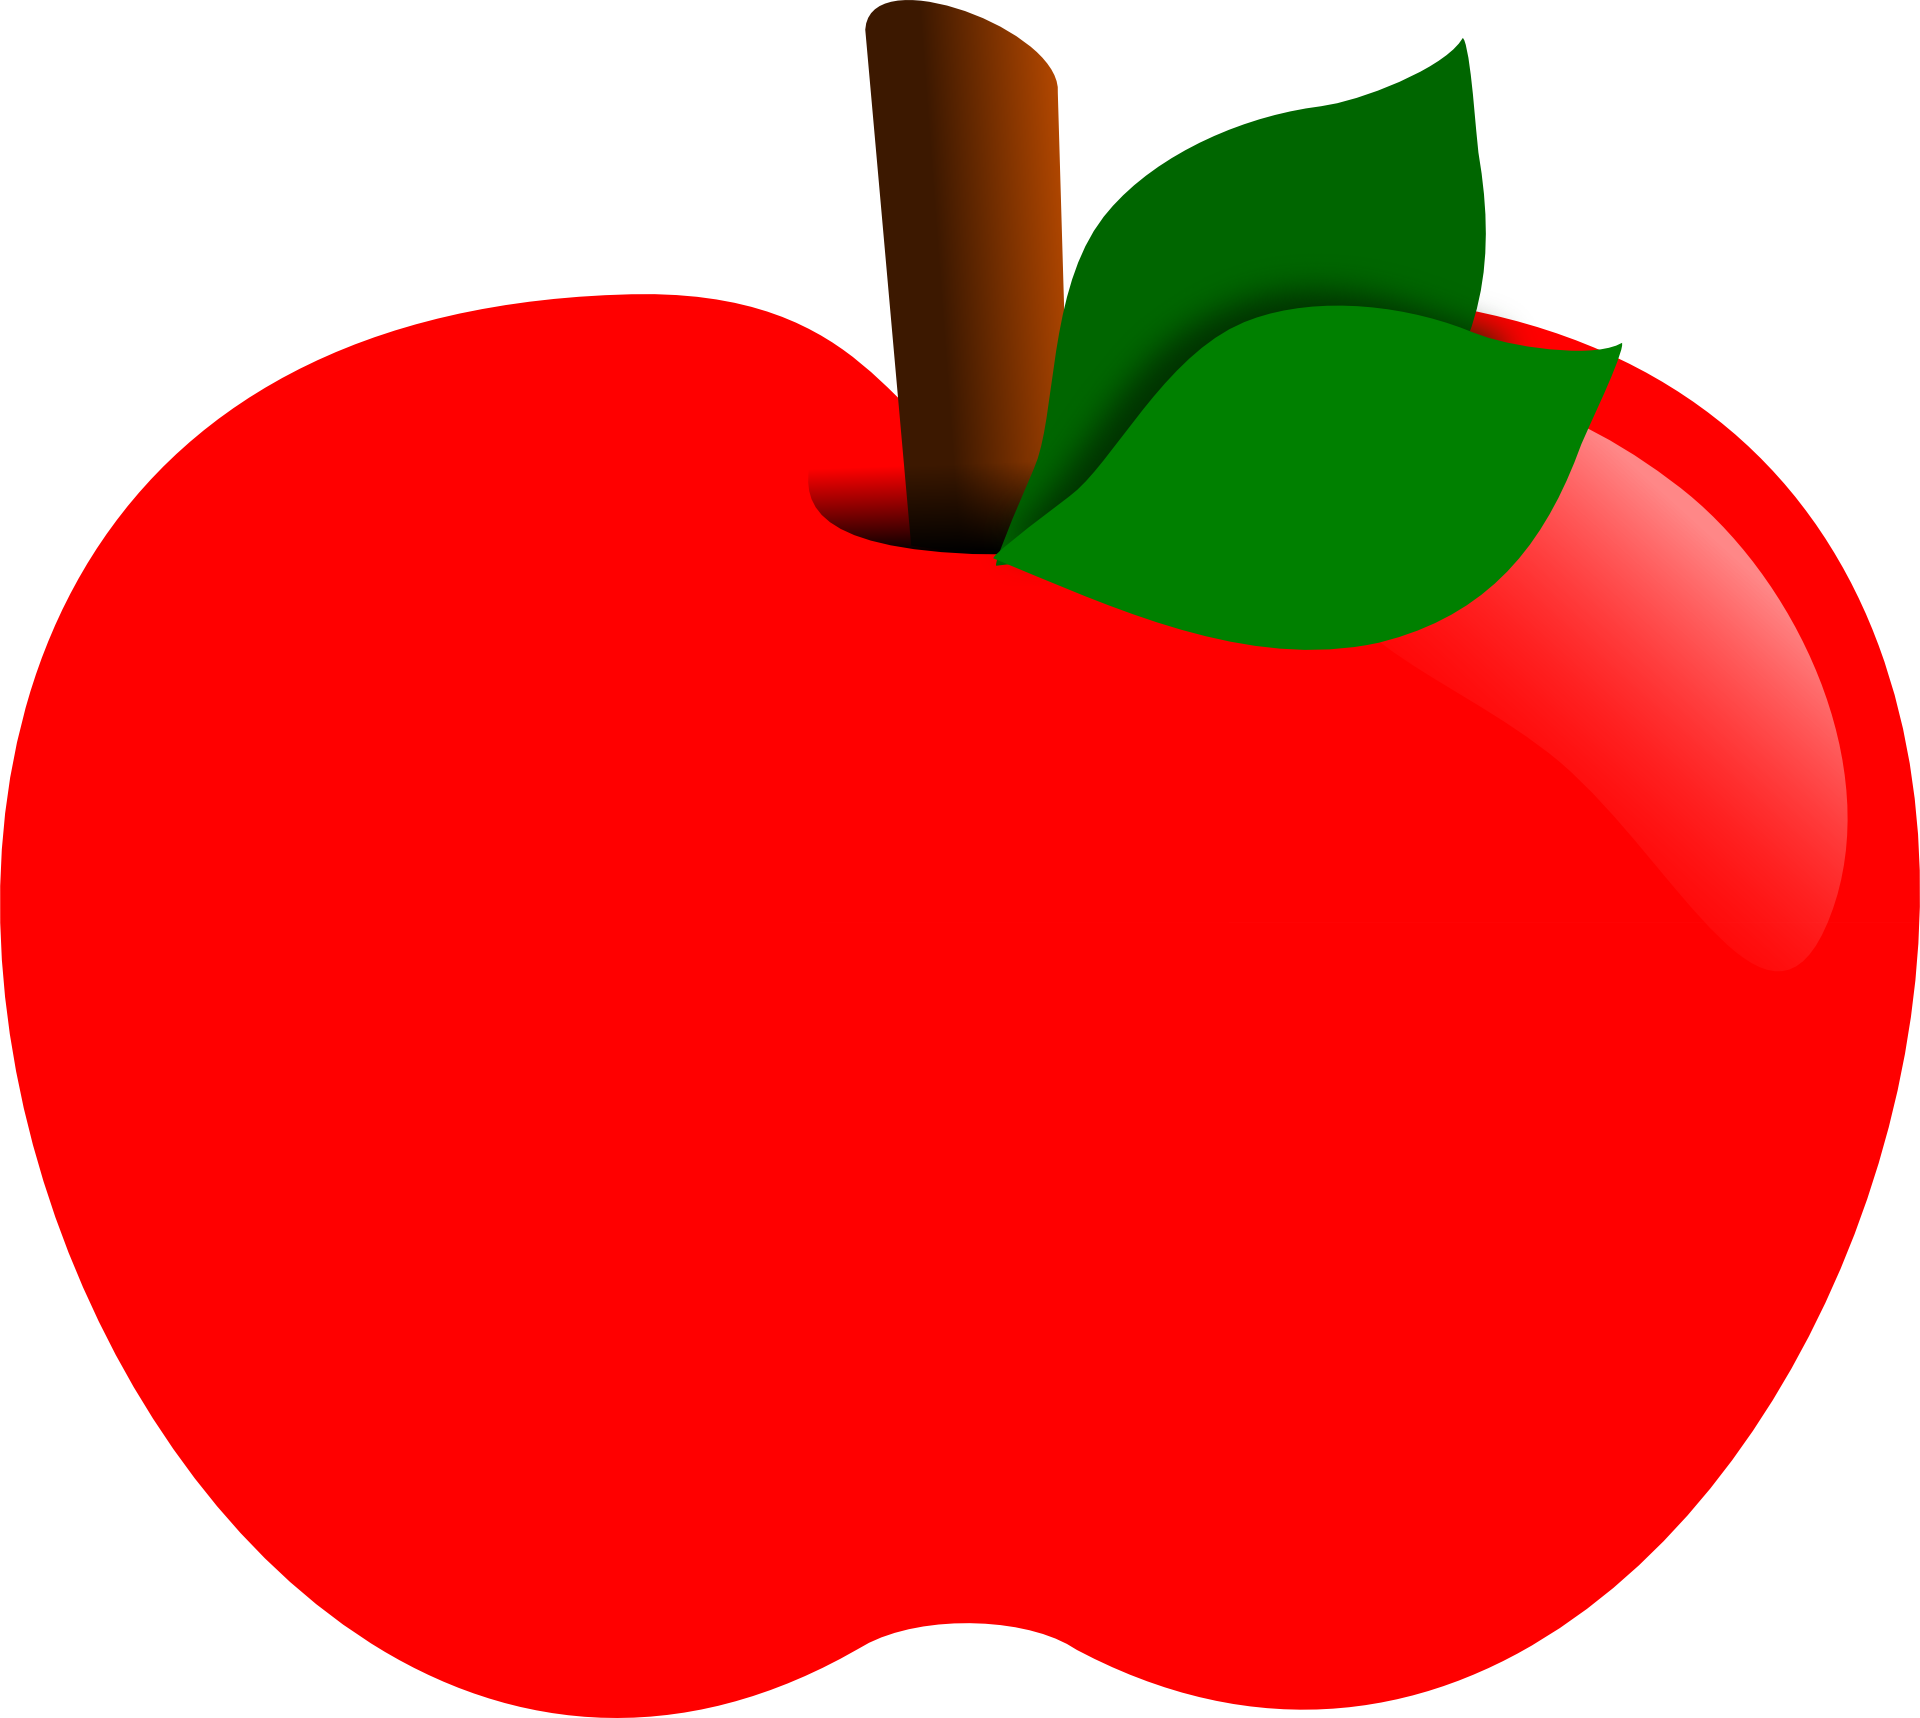 Red free image. Drawing apple clipart royalty free